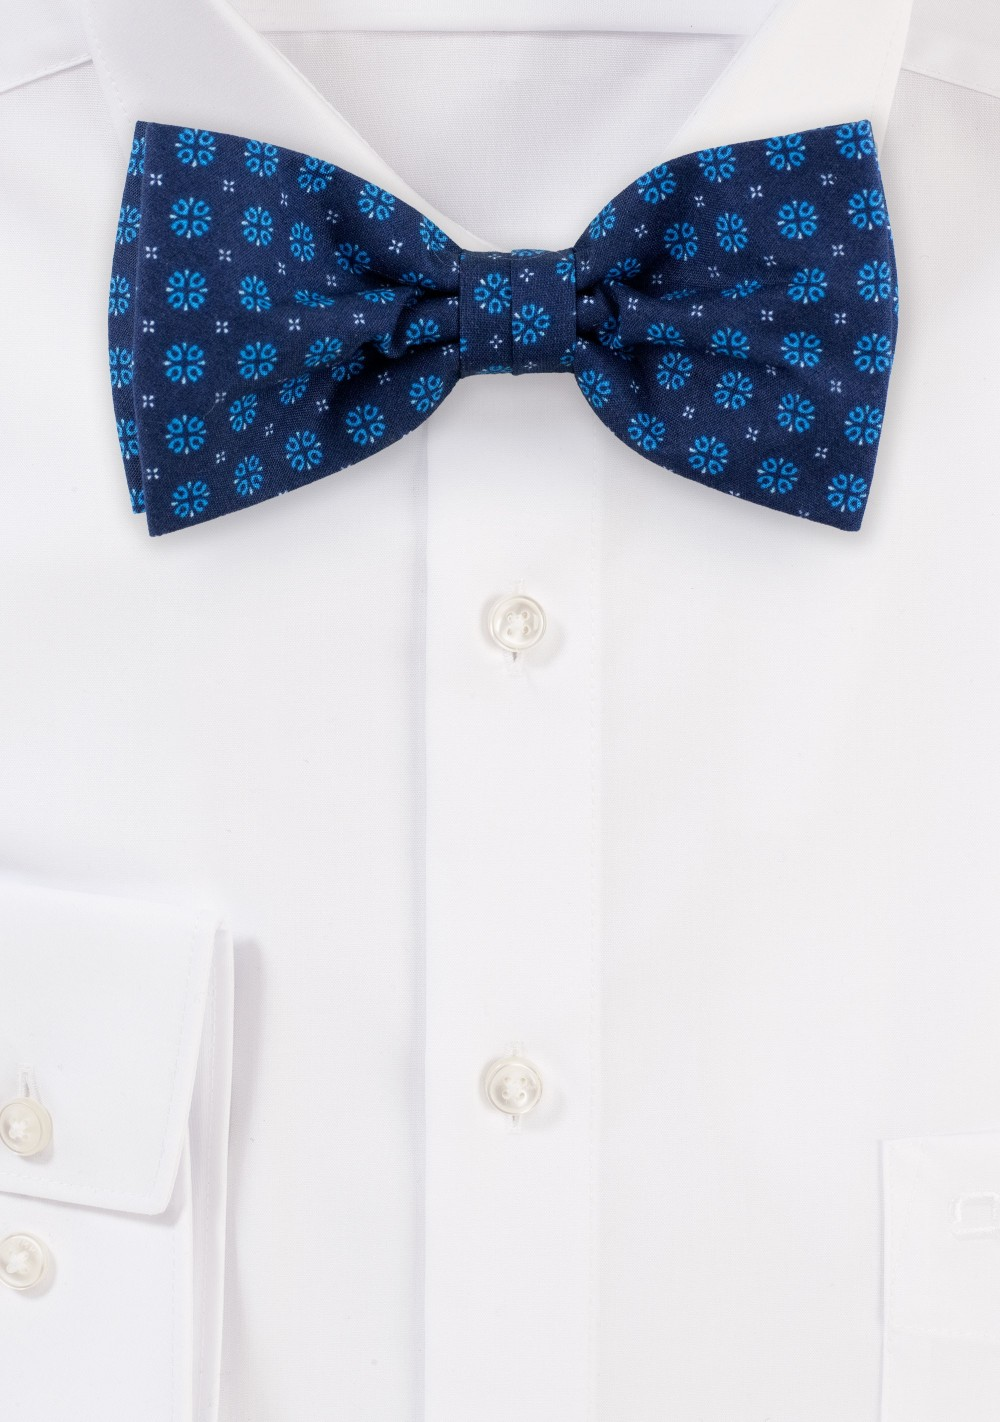 Geo Print Cotton Bow Tie in Navy and Blues